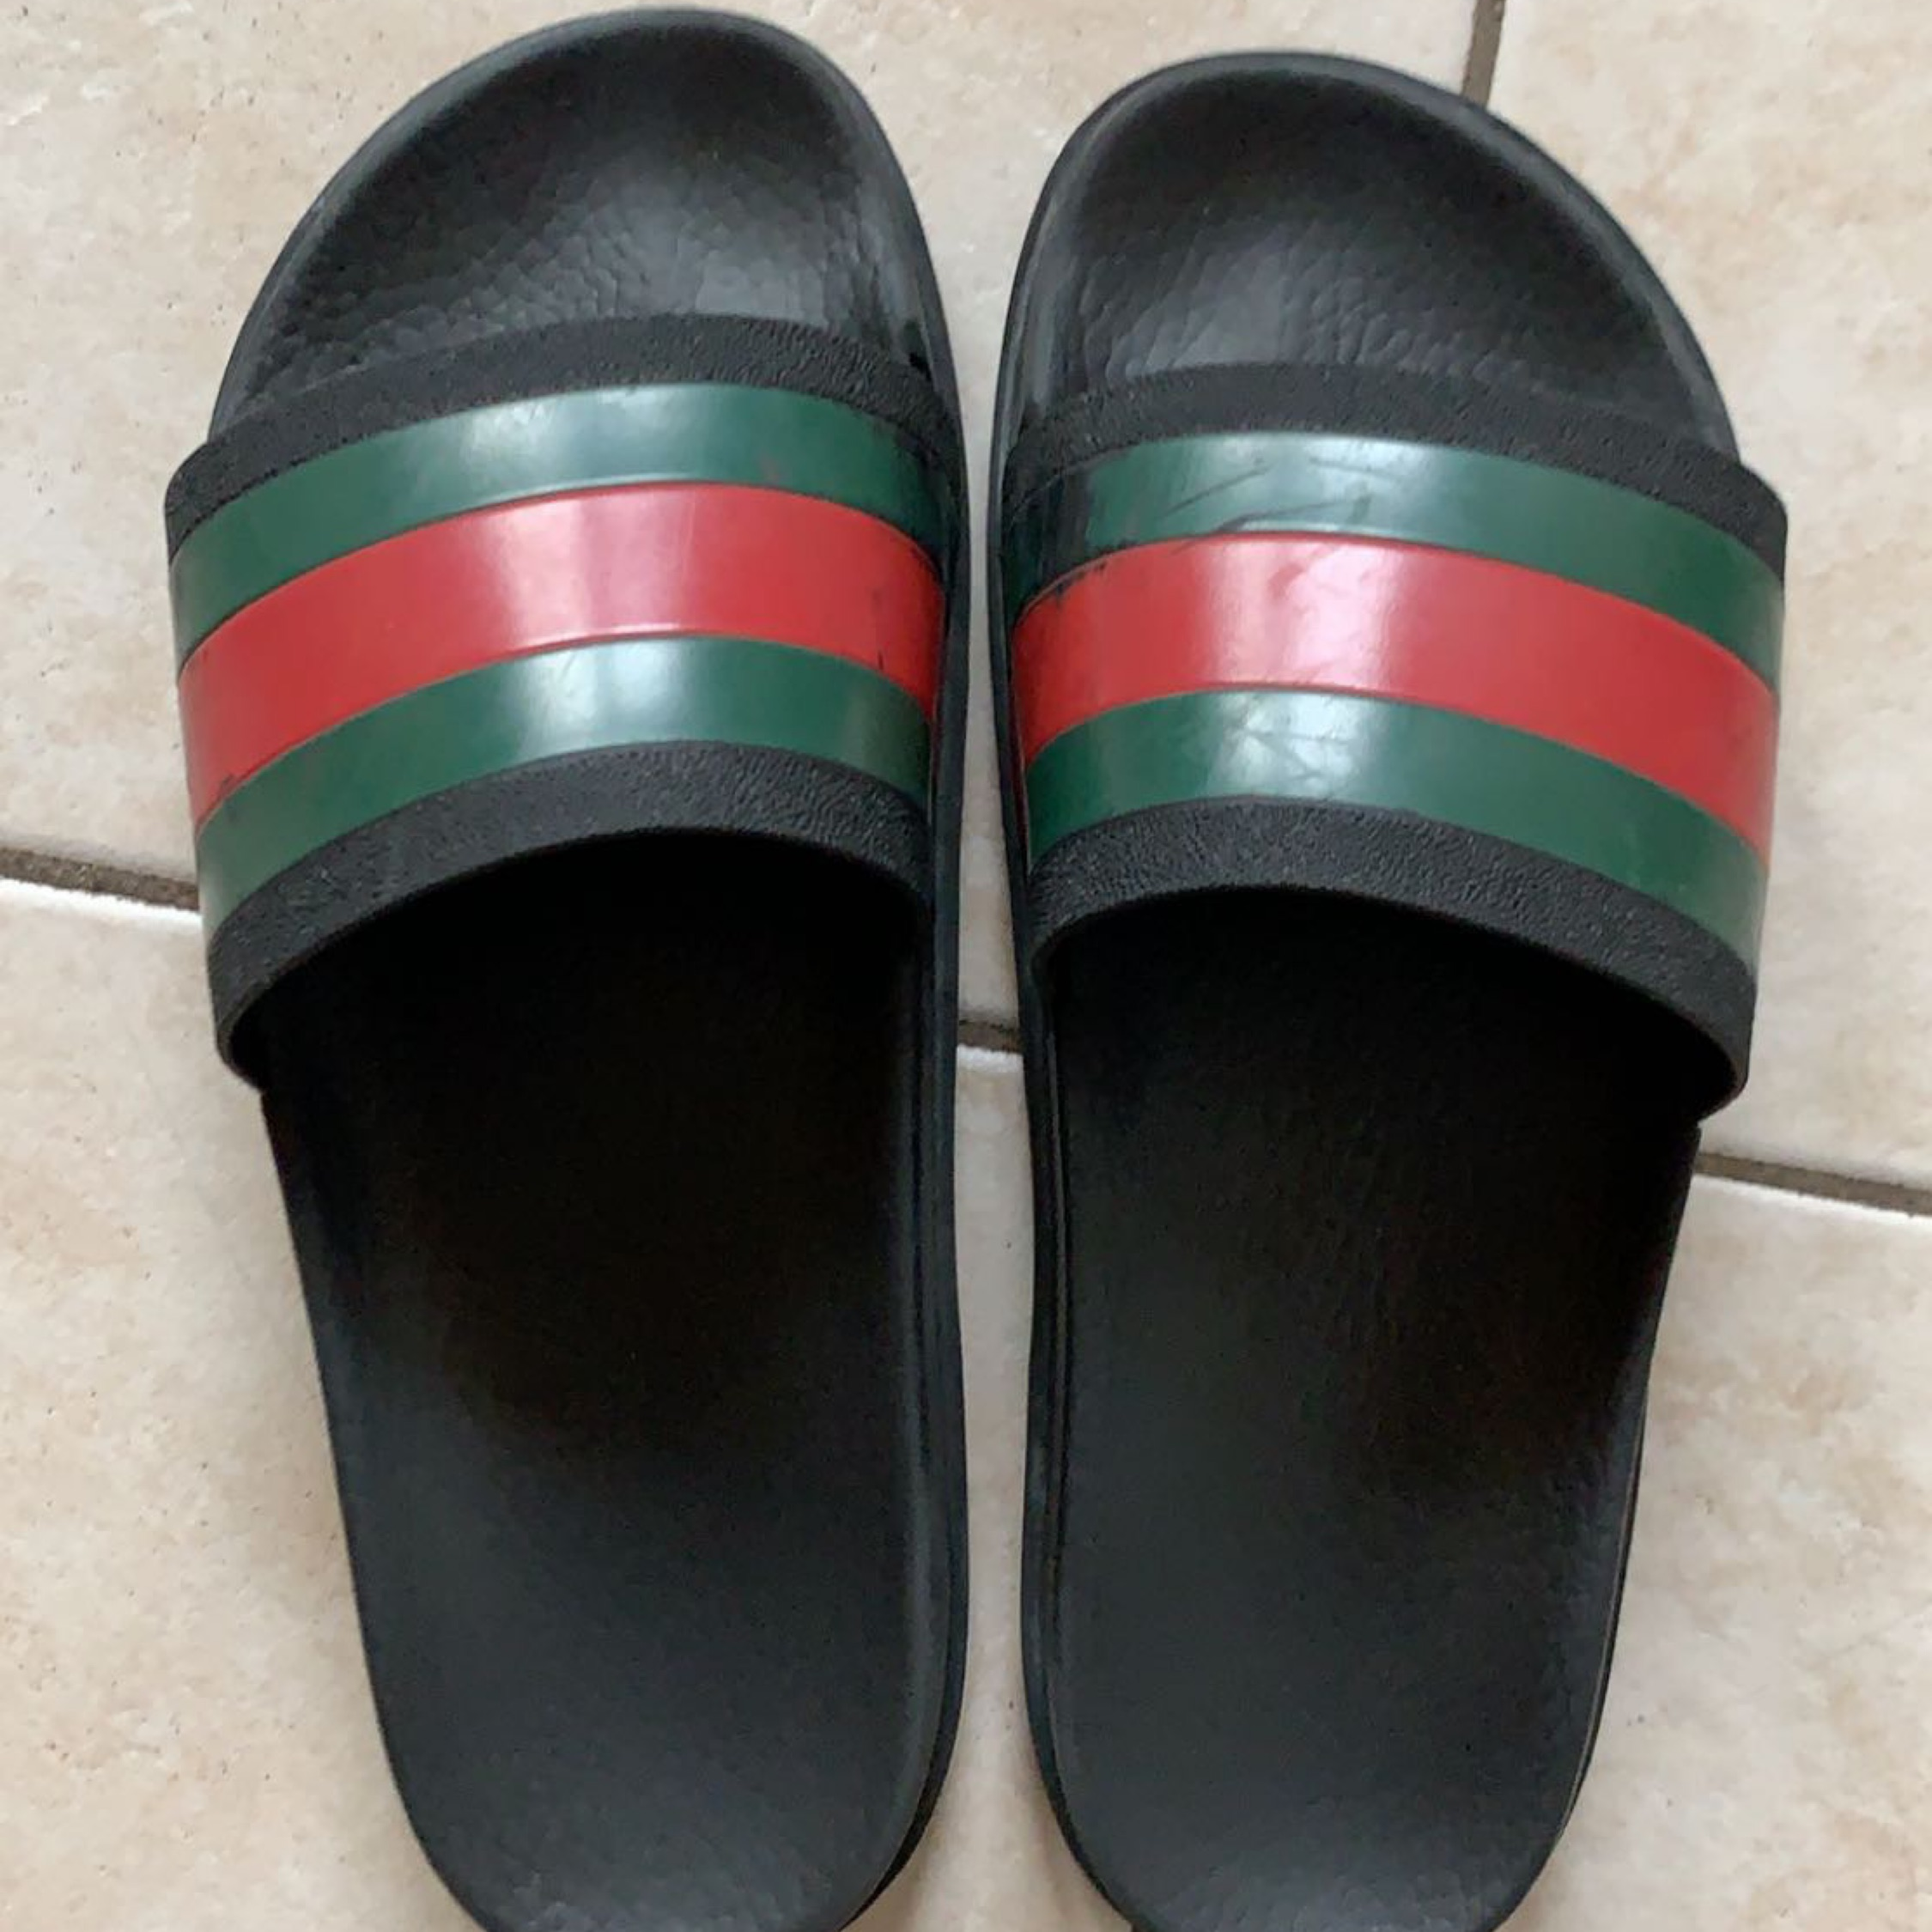 Gucci Slides. $60.00. US 8